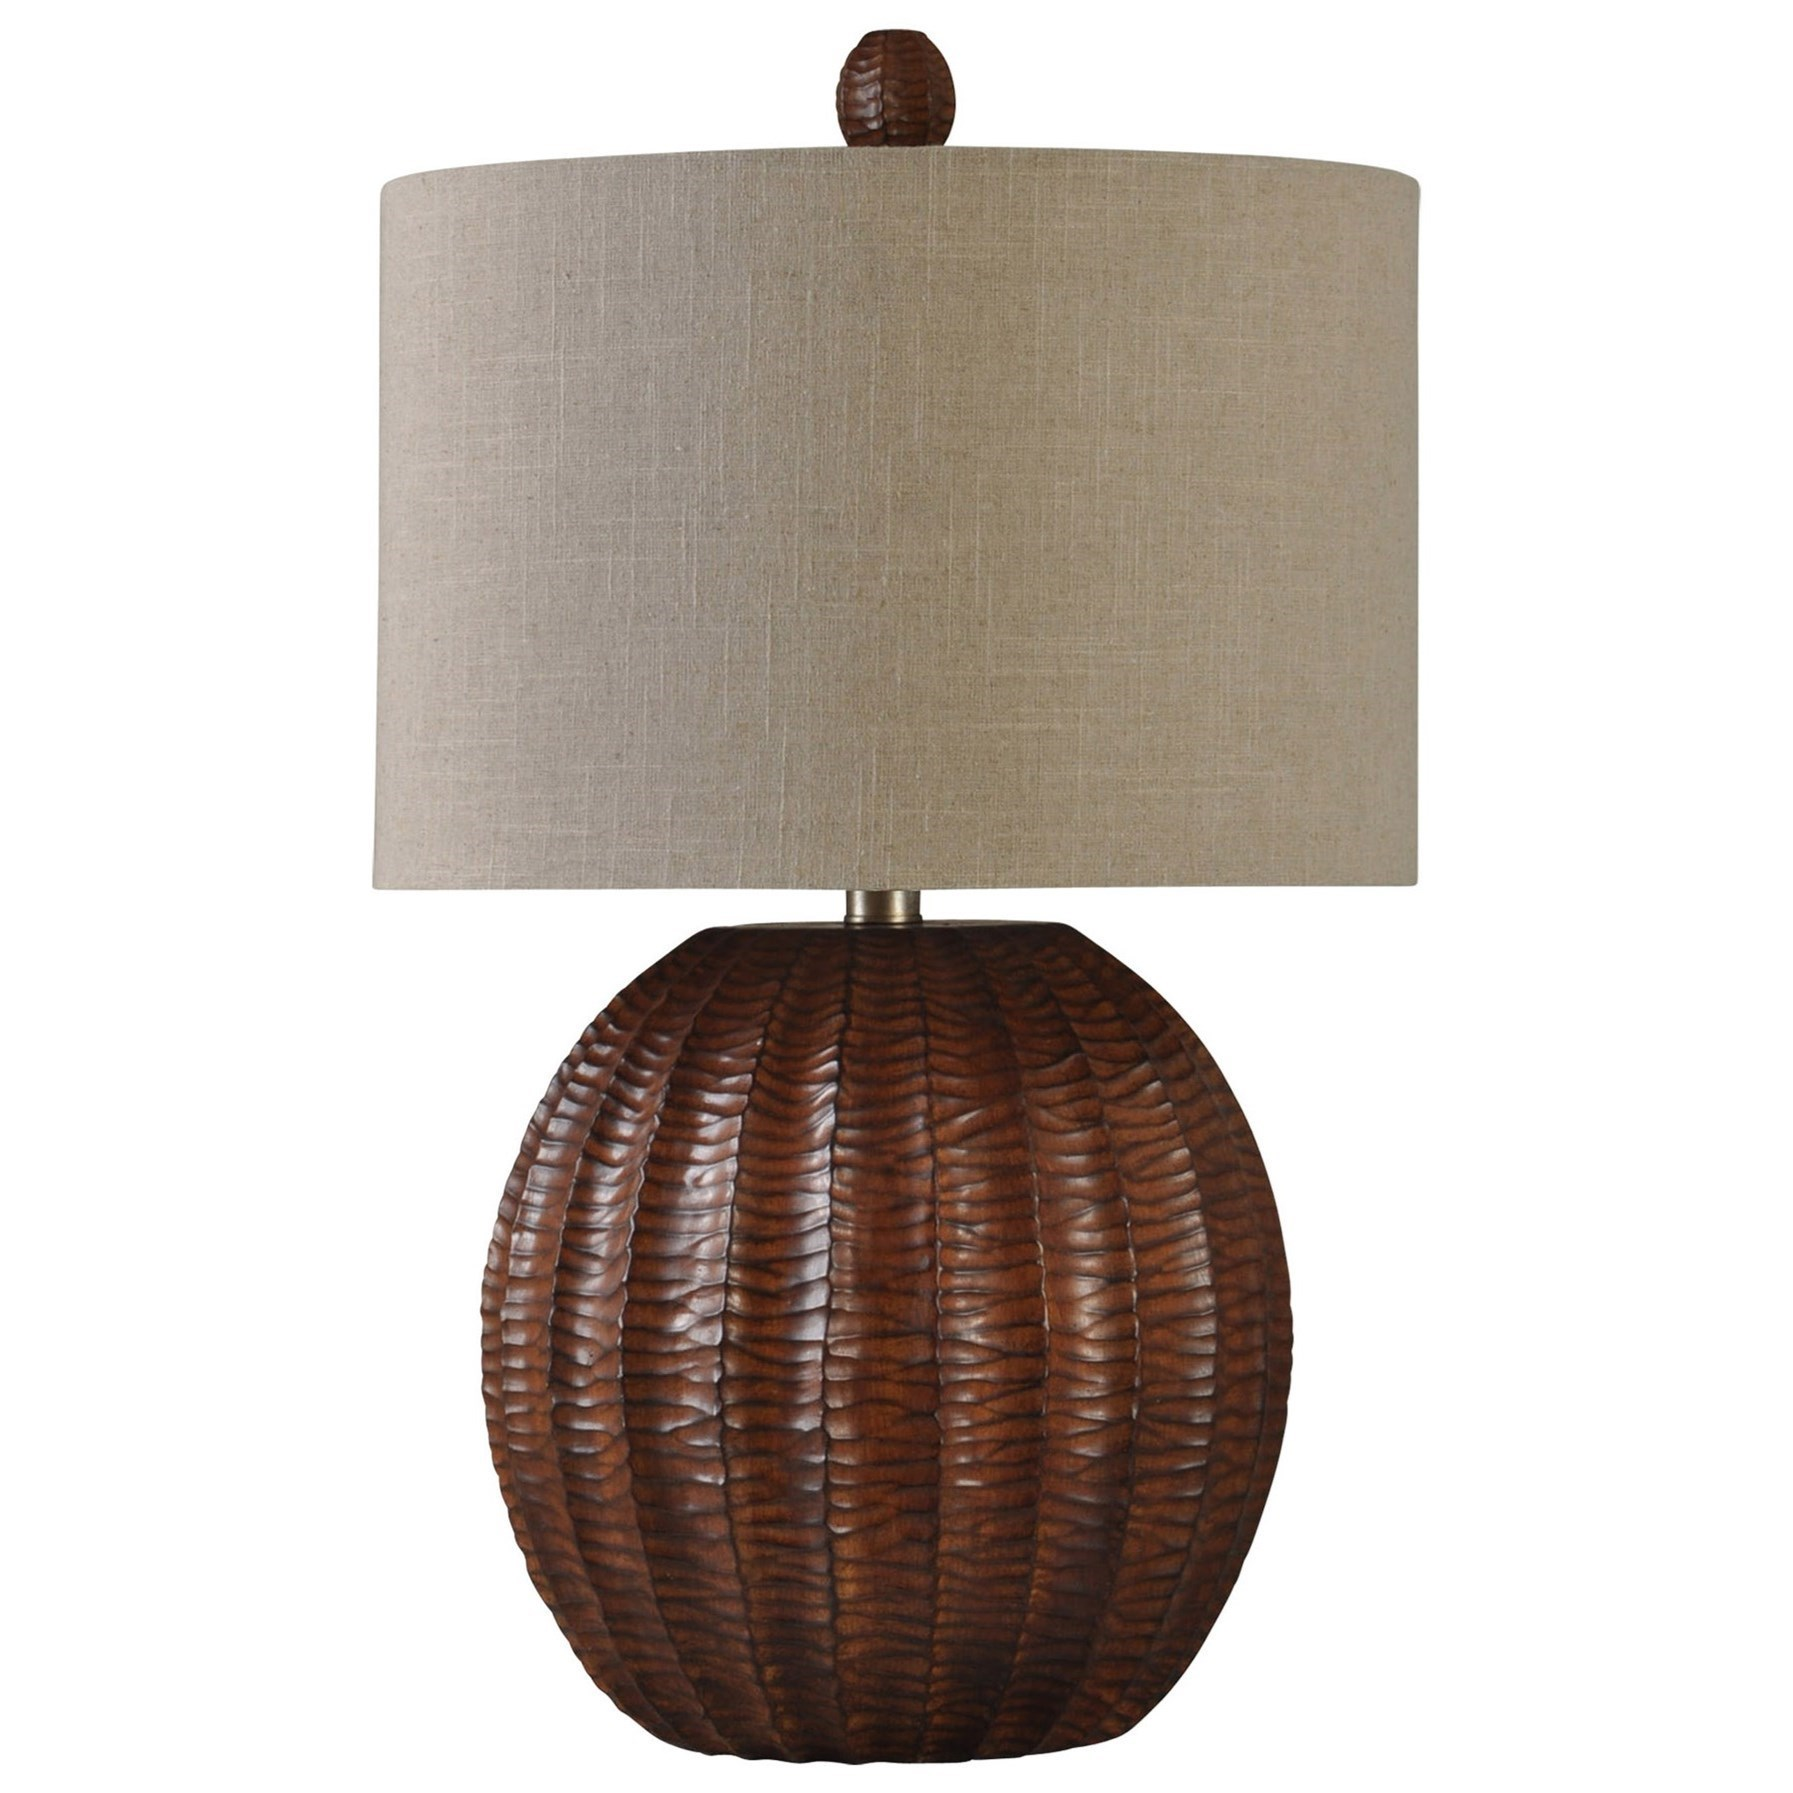 Lamps Wood Brown Finish Table Lamp By StyleCraft